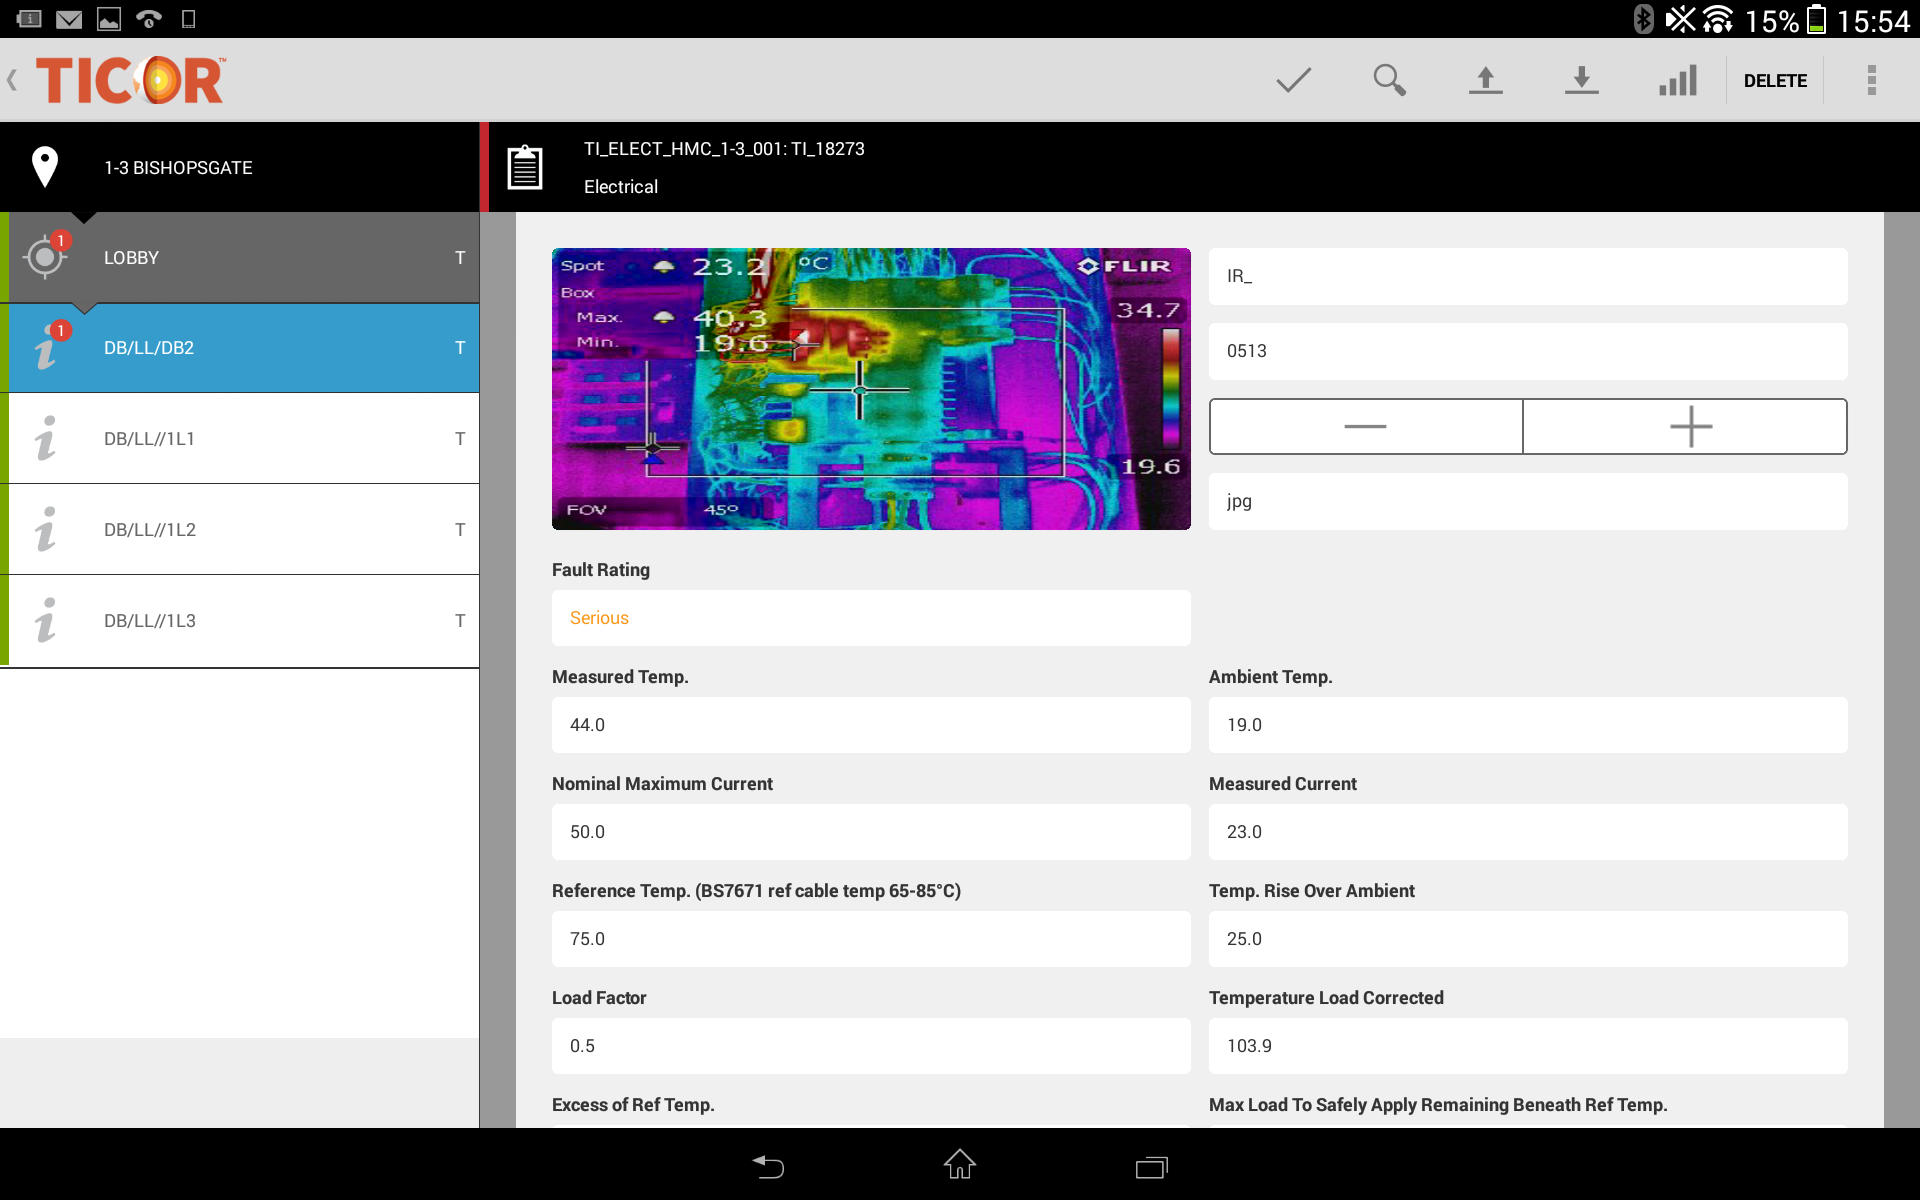 Thermal Imaging Software - Ticor Intended For Thermal Imaging Report Template